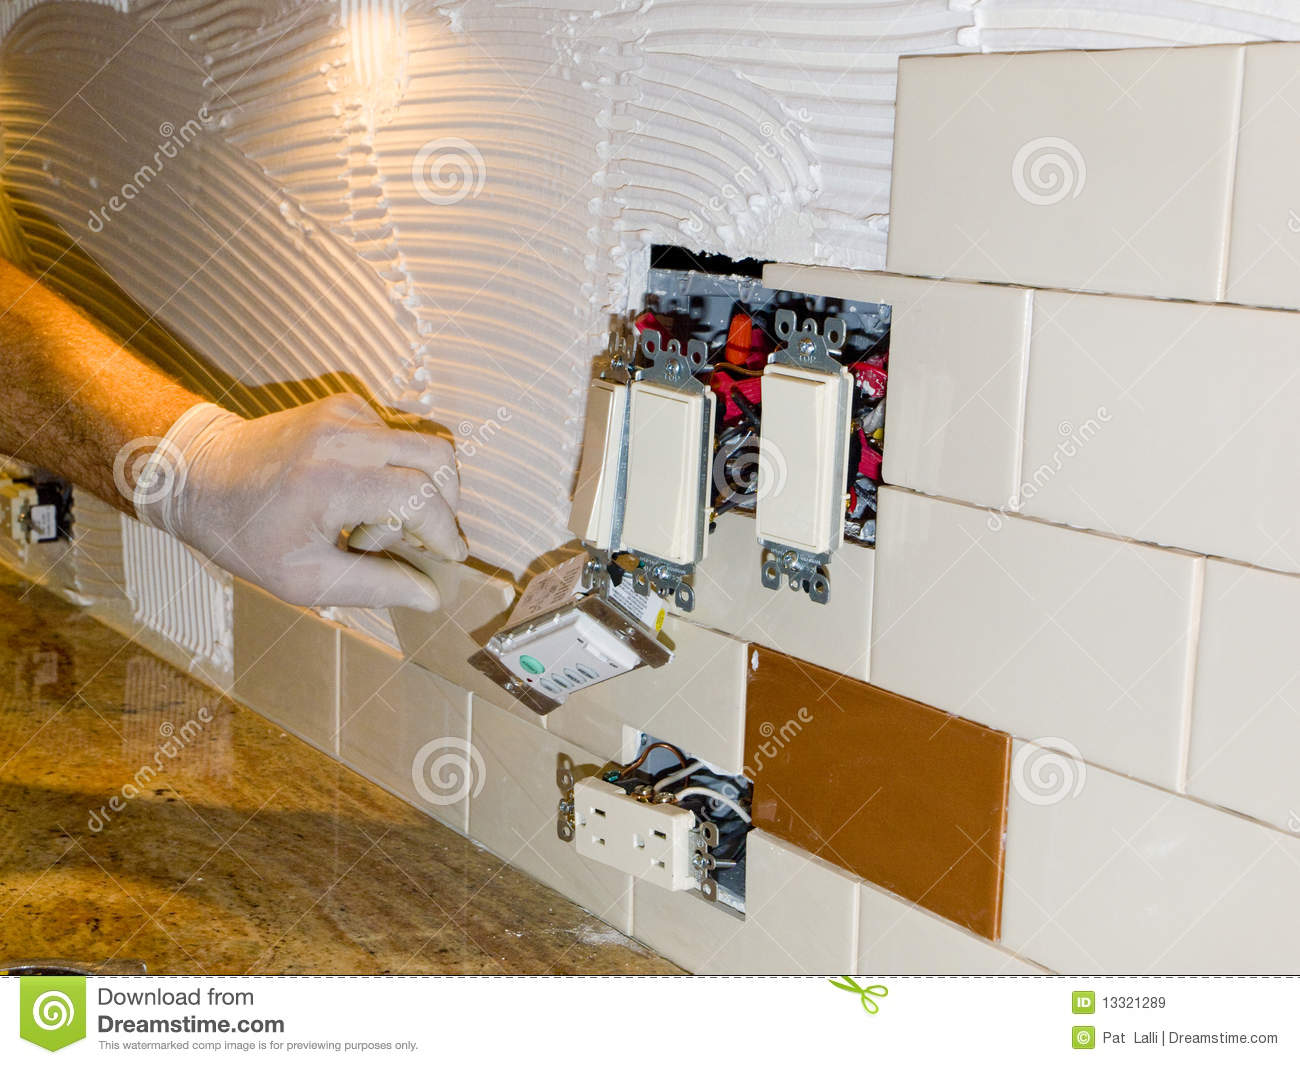 Marvelous Ceramic Tile Installation On Kitchen Backsplash 10 Good Ideas